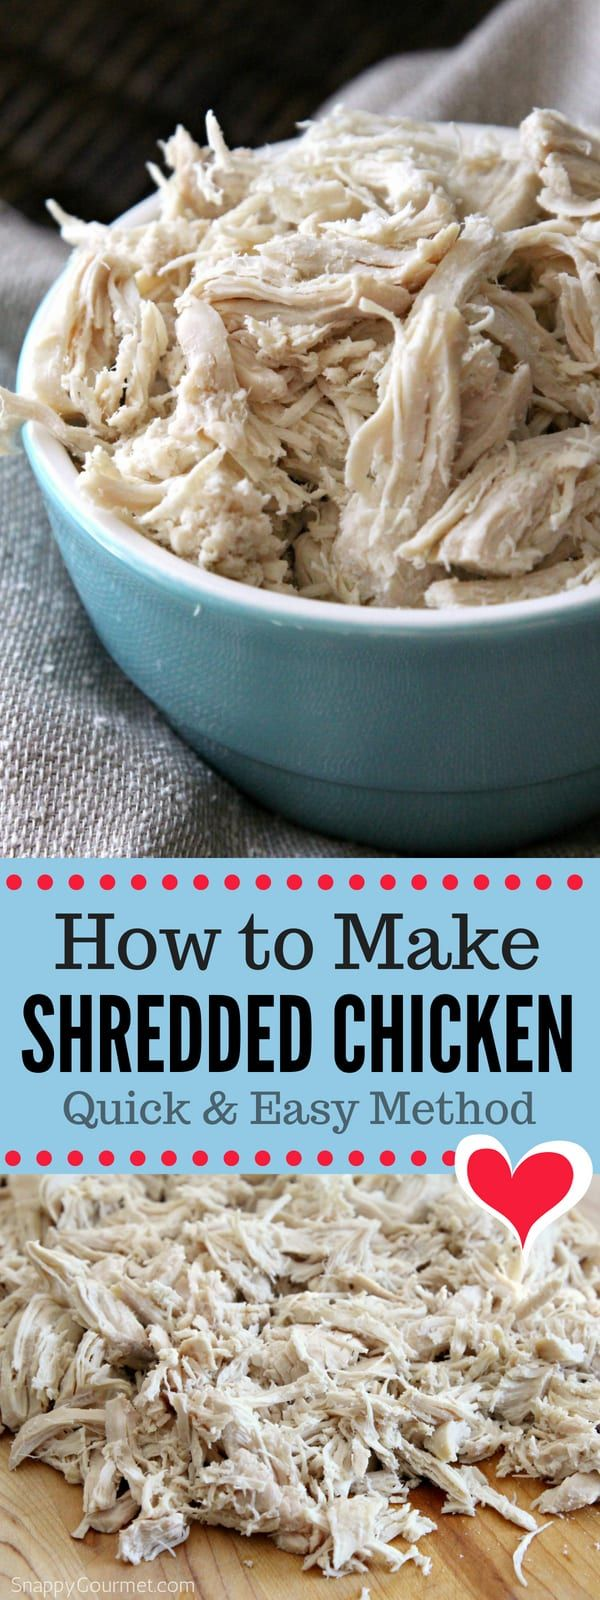 How to Make Shredded Chicken - Snappy Gourmet